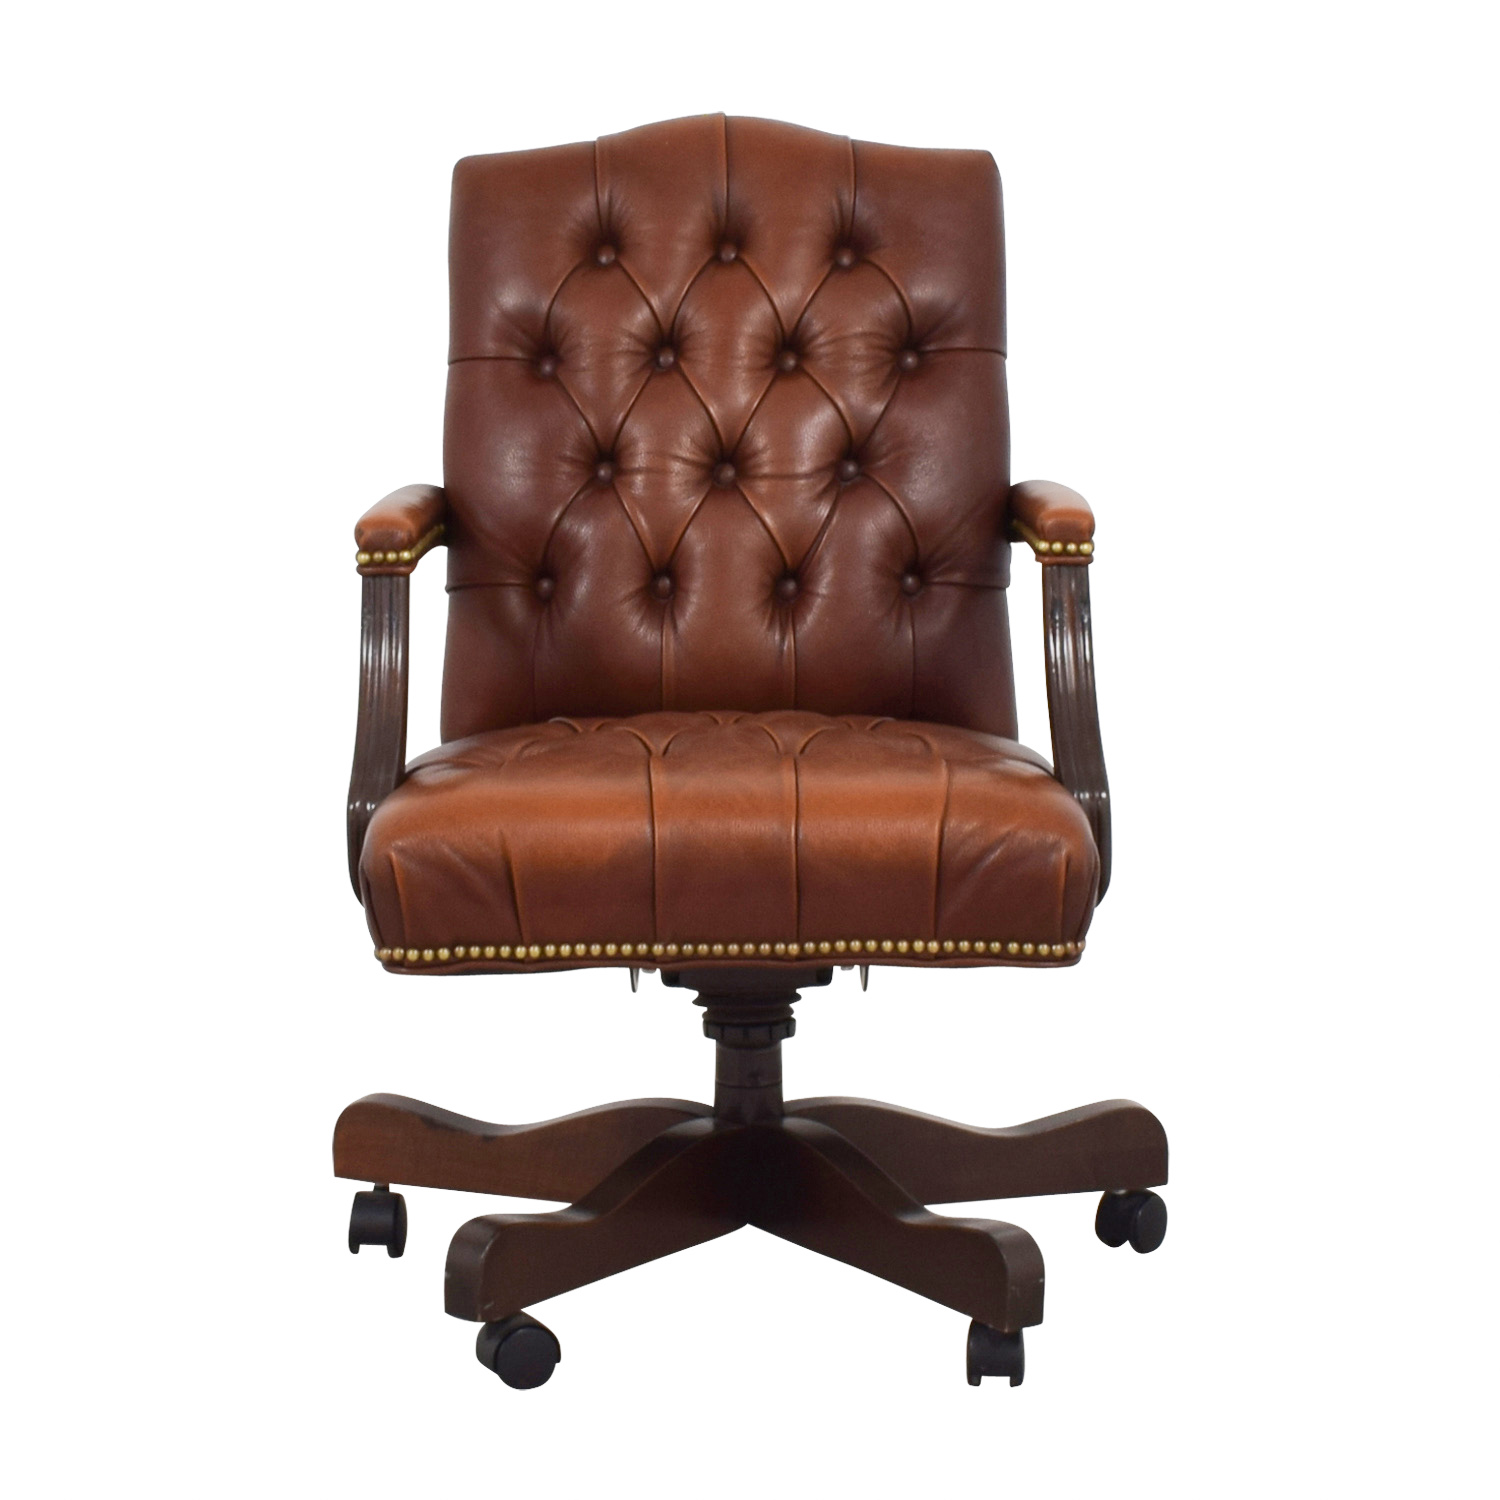 79 Off Ethan Allen Ethan Allen Brown Leather Desk Chair Chairs